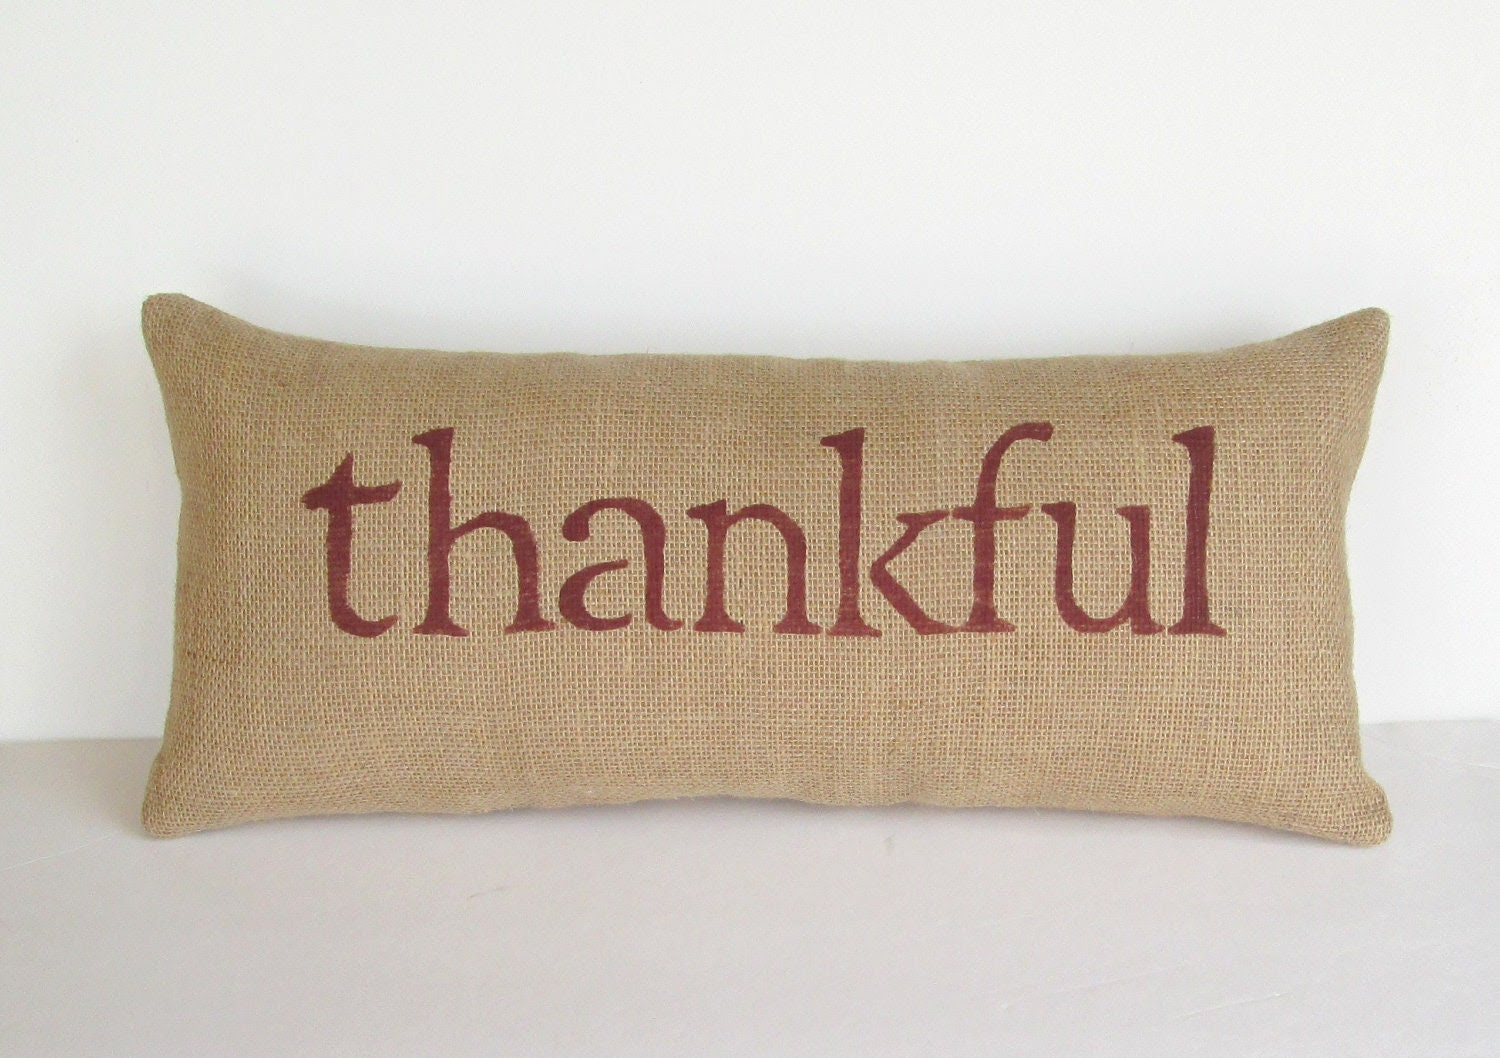 burlap thankful pillow, inspirational decorative pillow, holiday decor, rustic, woodland, Thanksgiving home decor, READY TO SHIP